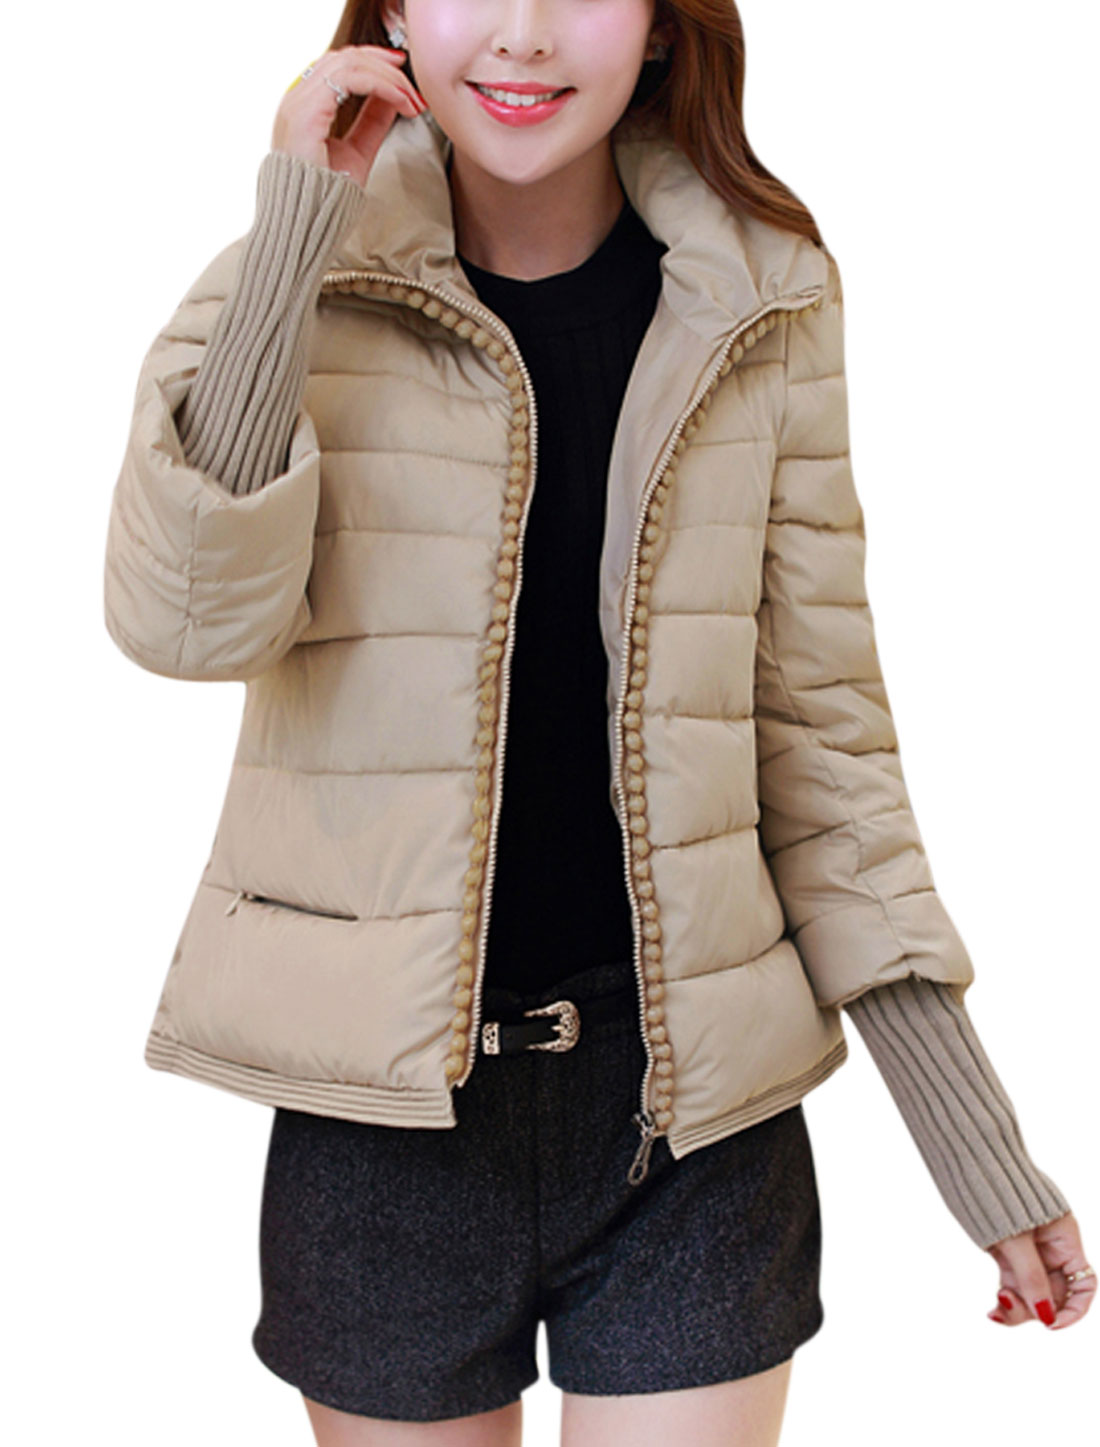 Women Fashion Style Zip Up Beads Decor Casual Down Jacket Beige M